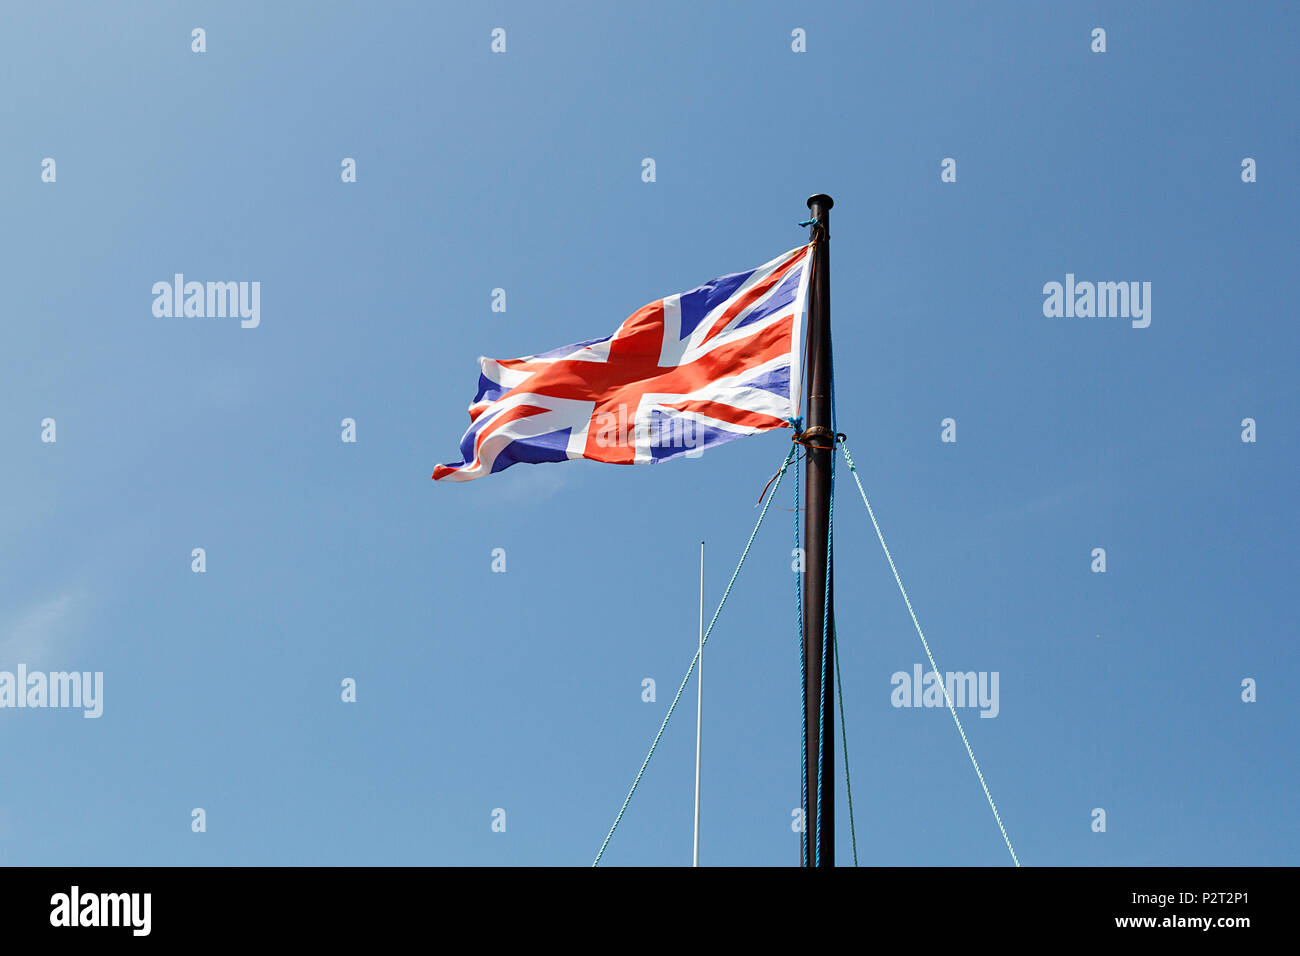 Union Jack flag flying in the breeze against a blue sky background. Stock Photo